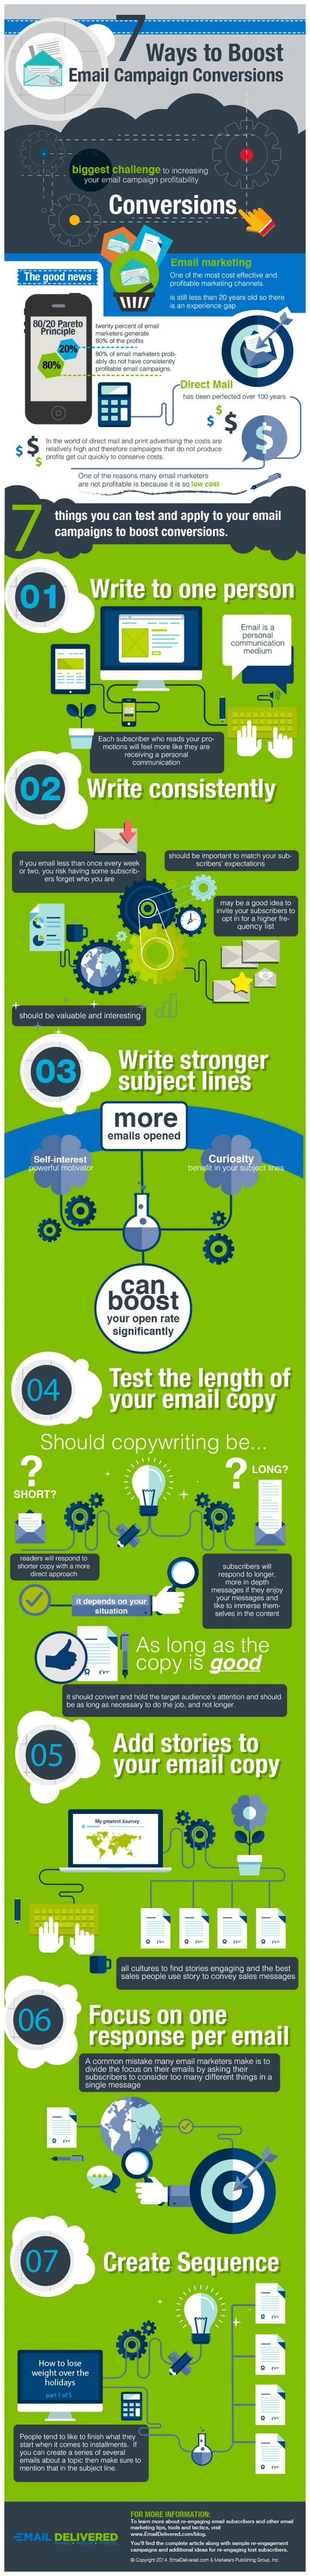 Uncategorized/telecharger skype gratuit pour windows - 7 Ways To Boost Email Campaign Conversions Infographic